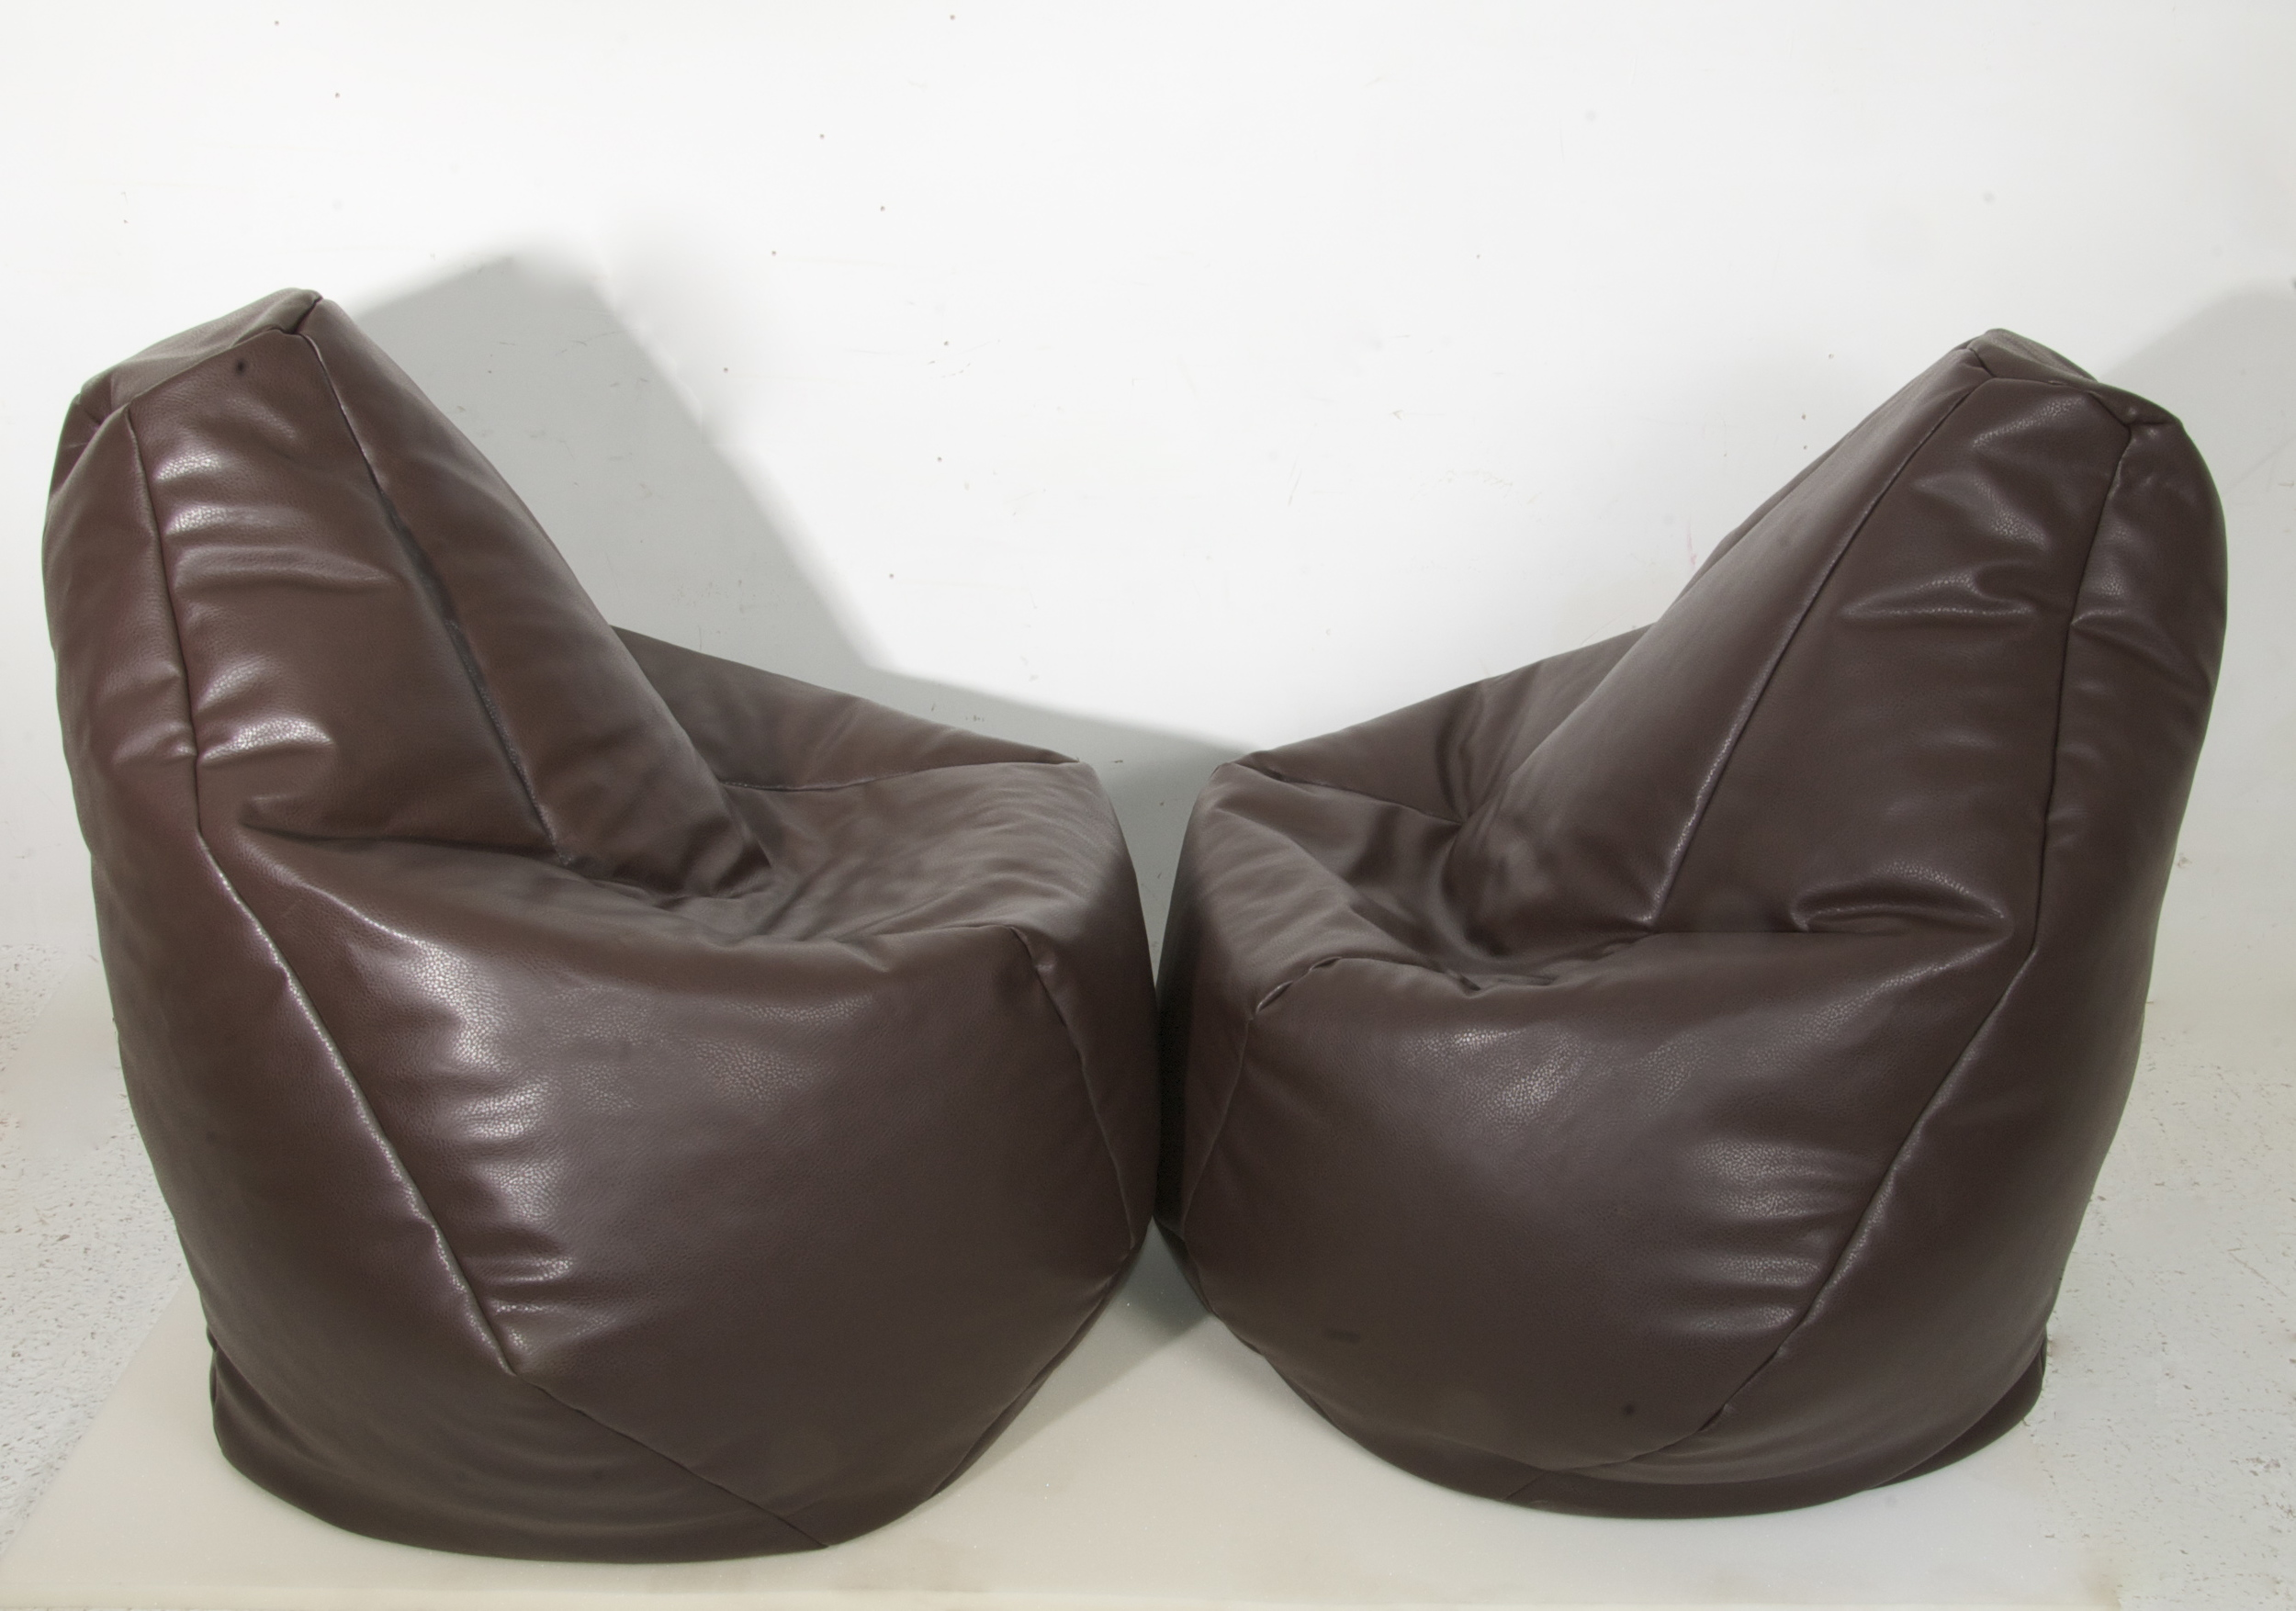 Giant Bean Bags by Sofa Riot.